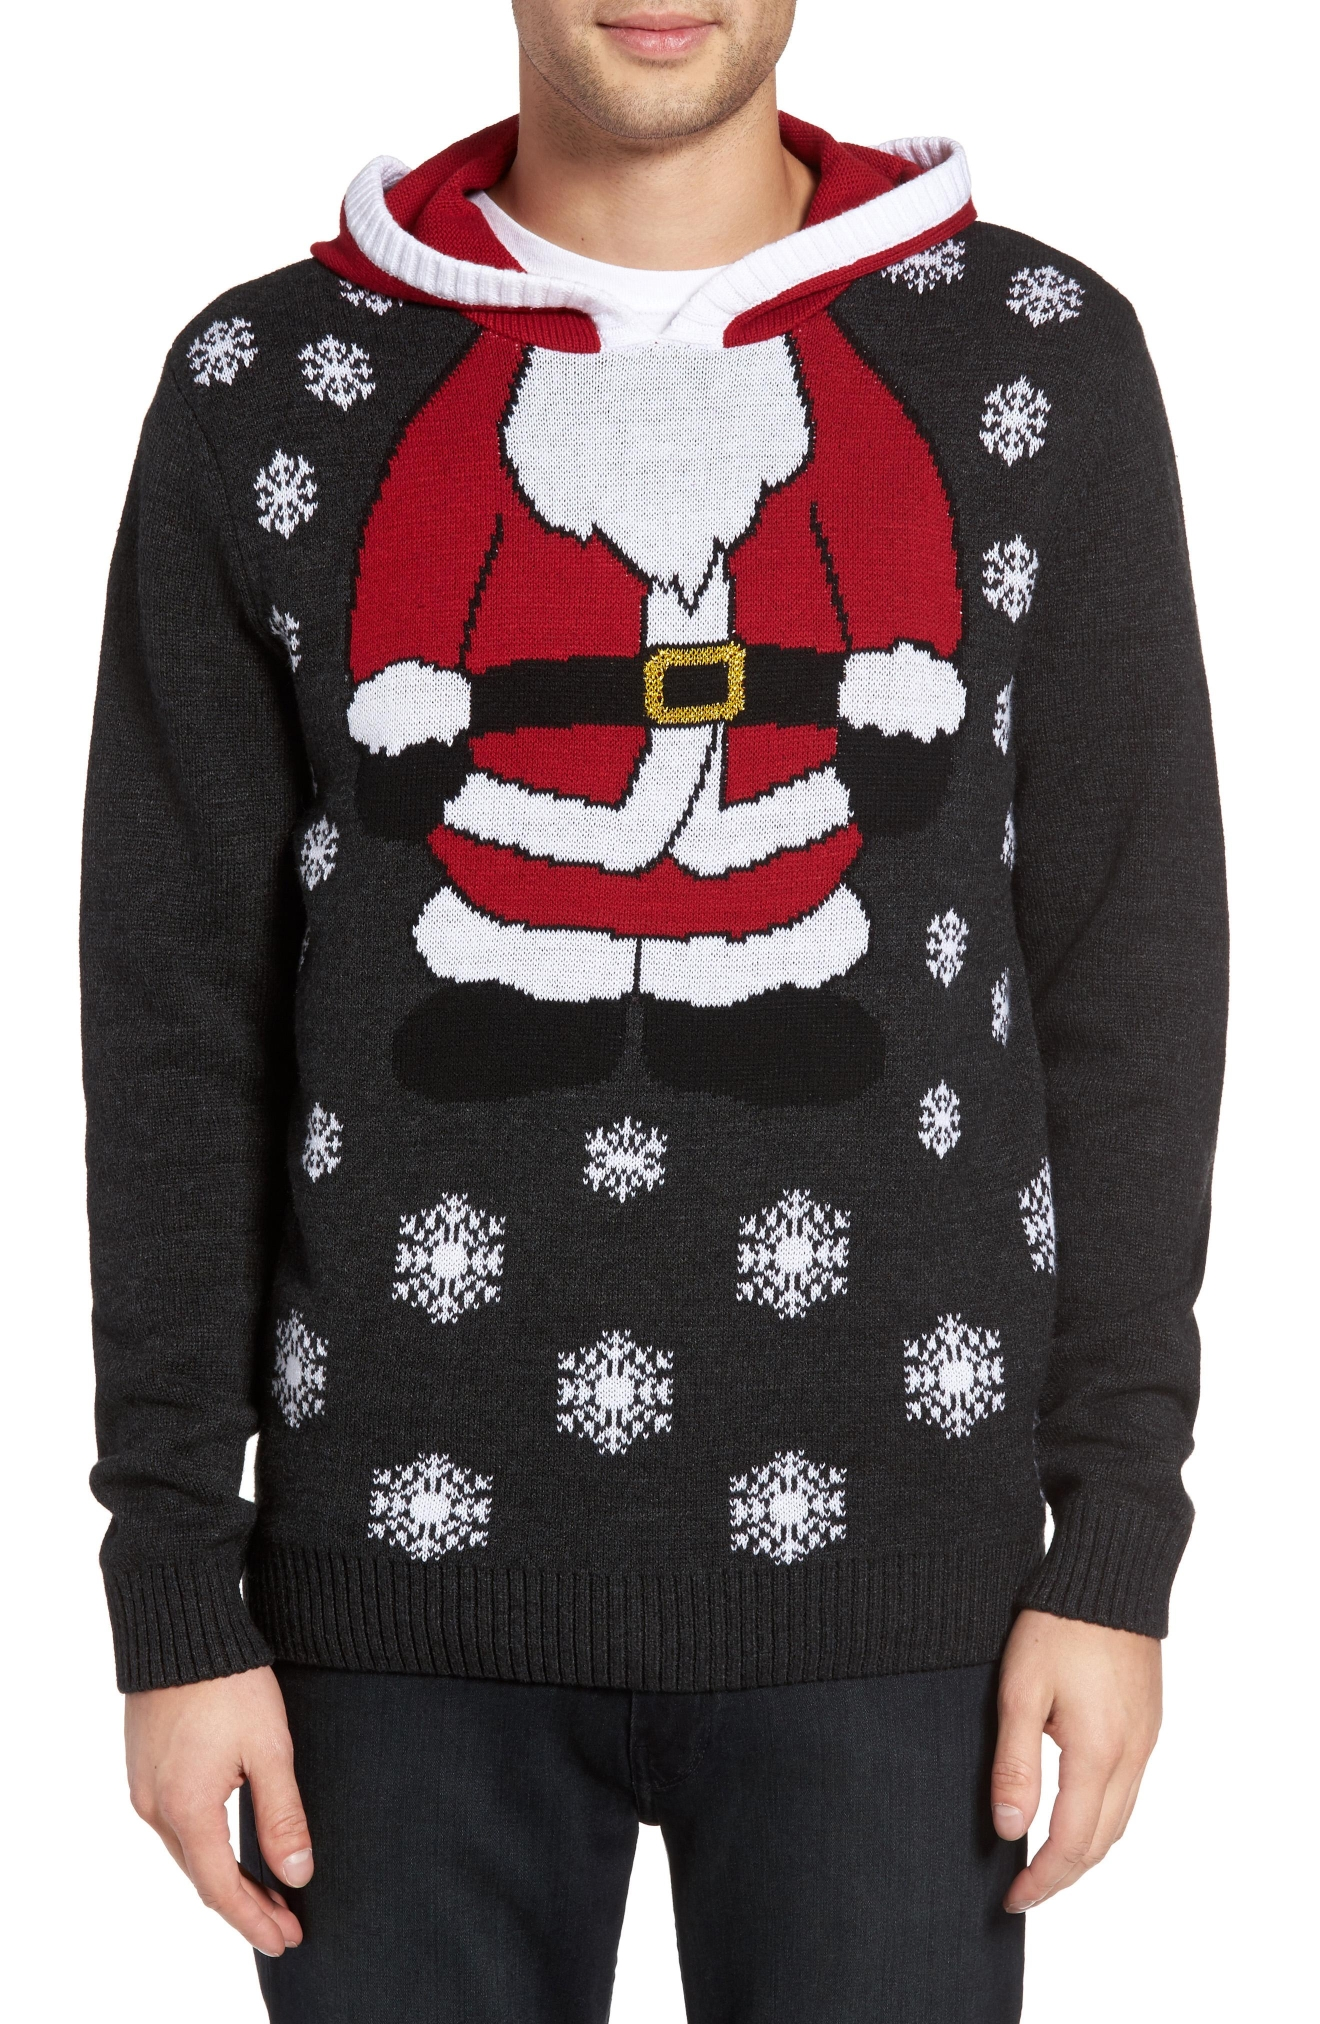 The Rail Santa Hooded Sweater, $49.50 (Photo: Nordstrom)